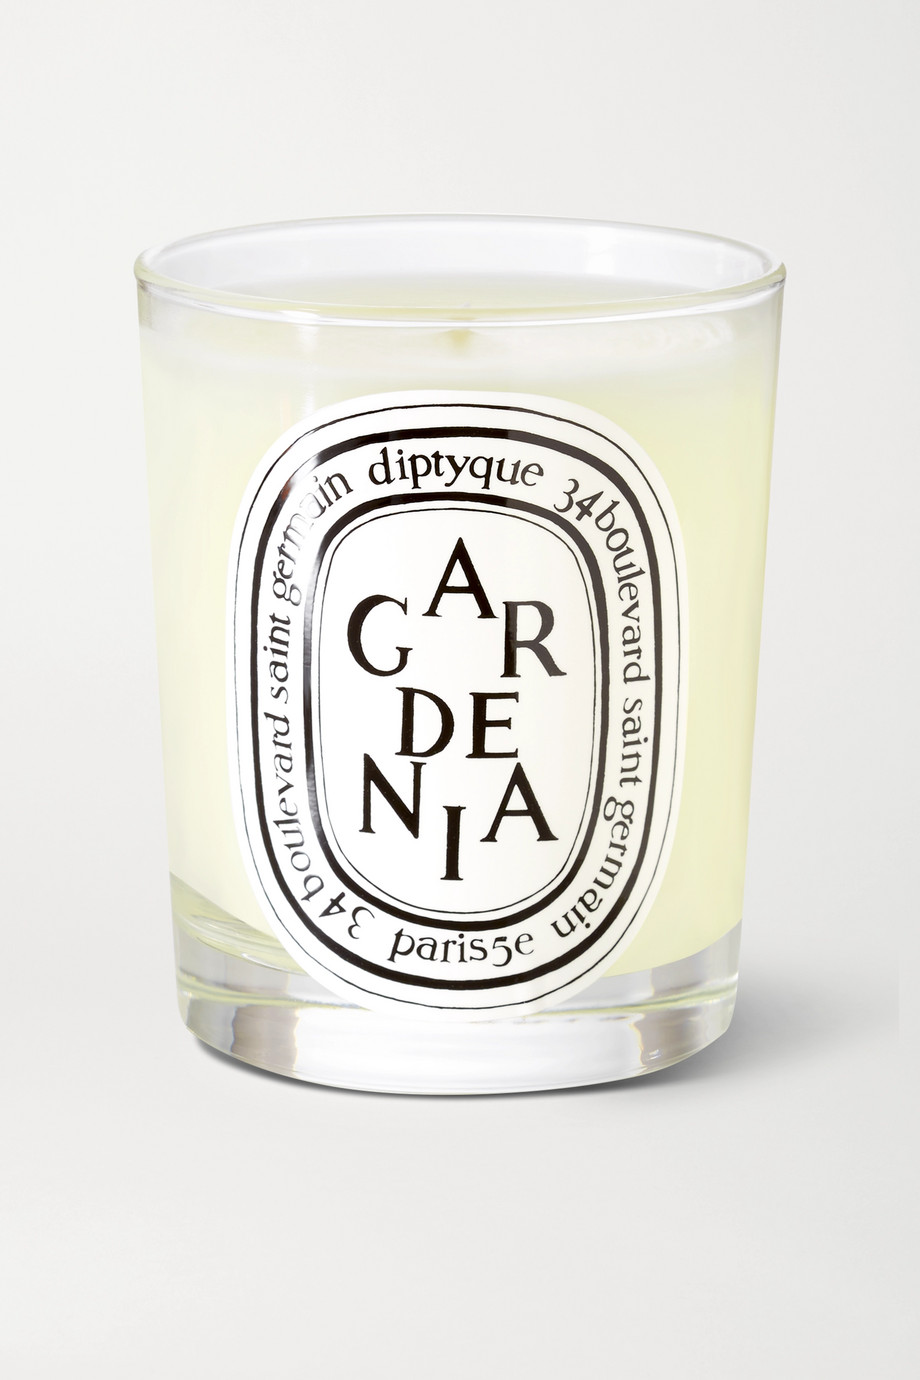 Diptyque Gardenia scented candle, 190g